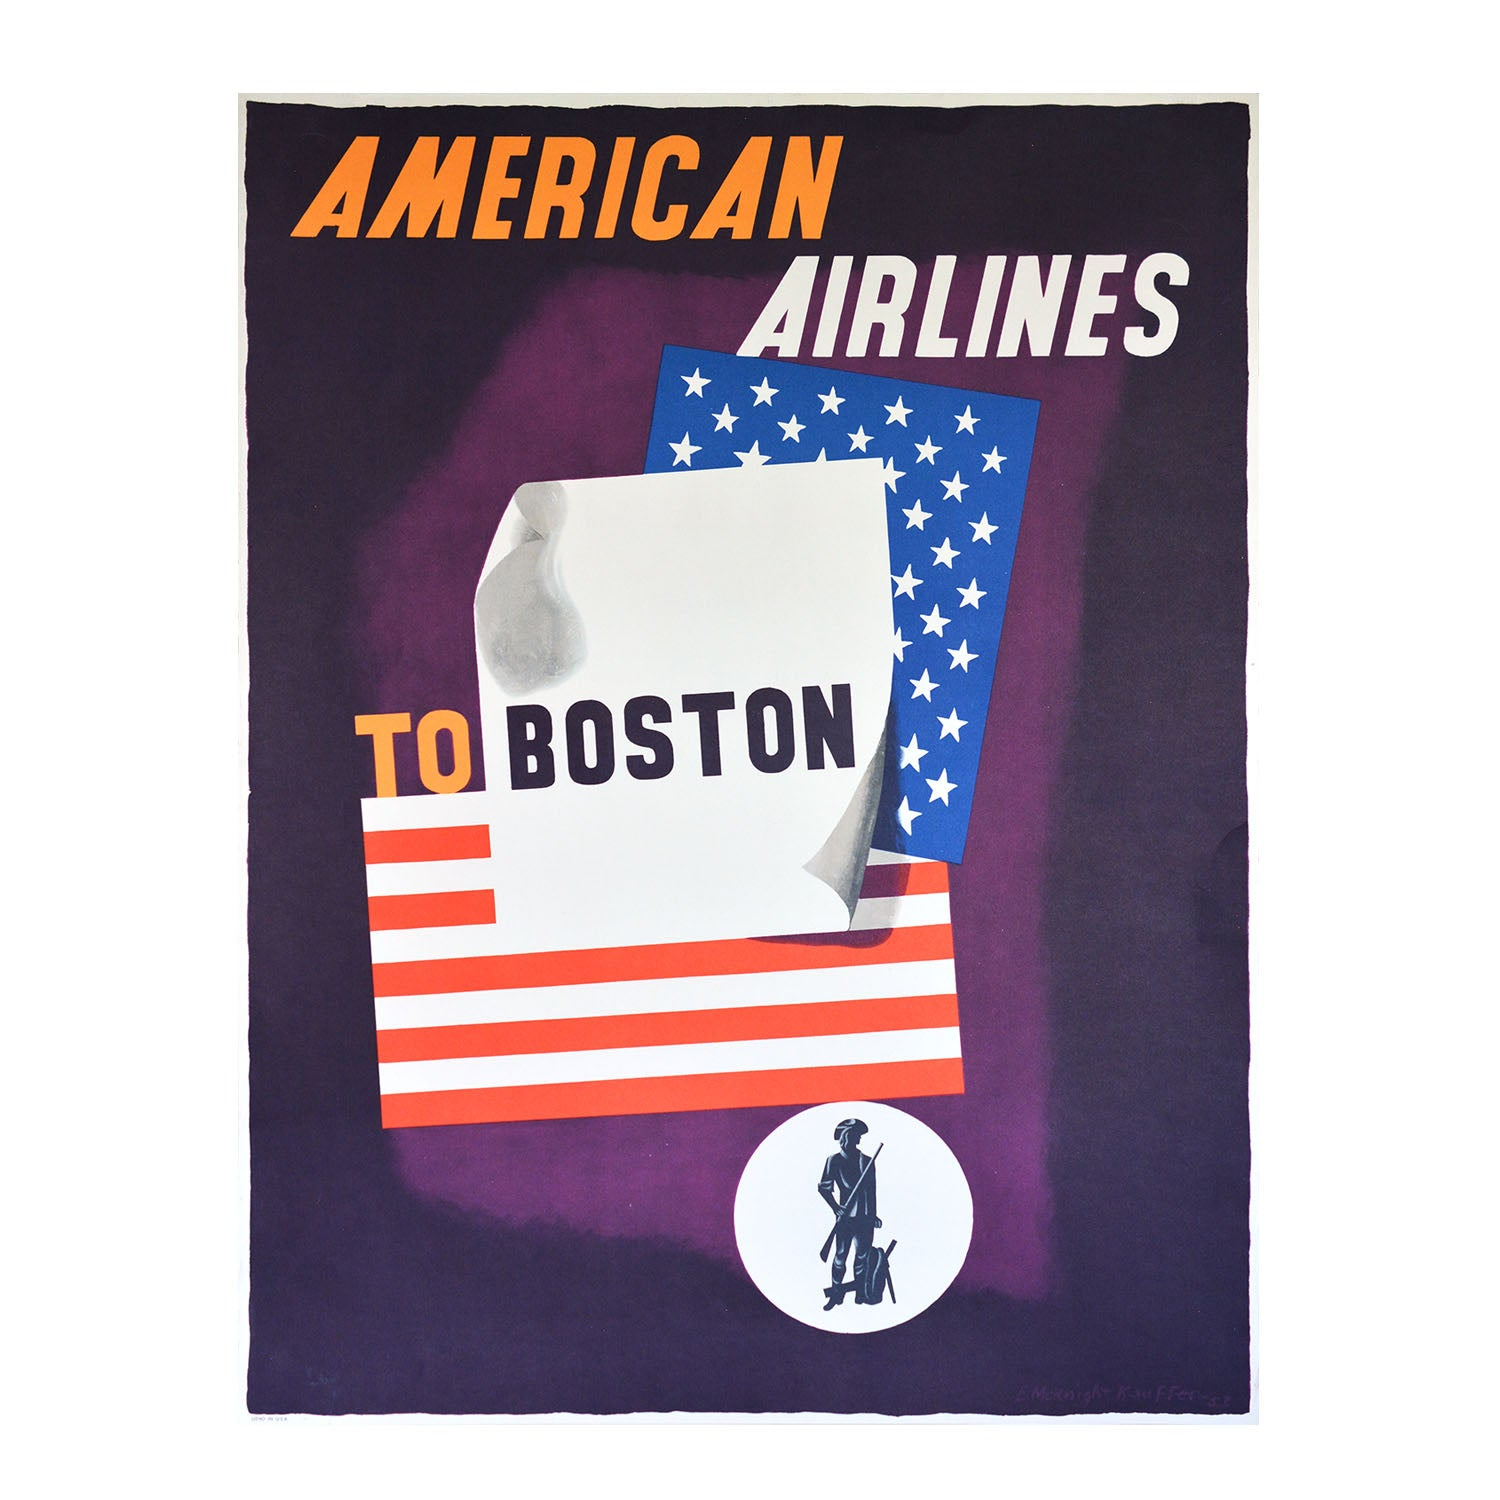 Original American Airlines Boston poster 1953 Kauffer